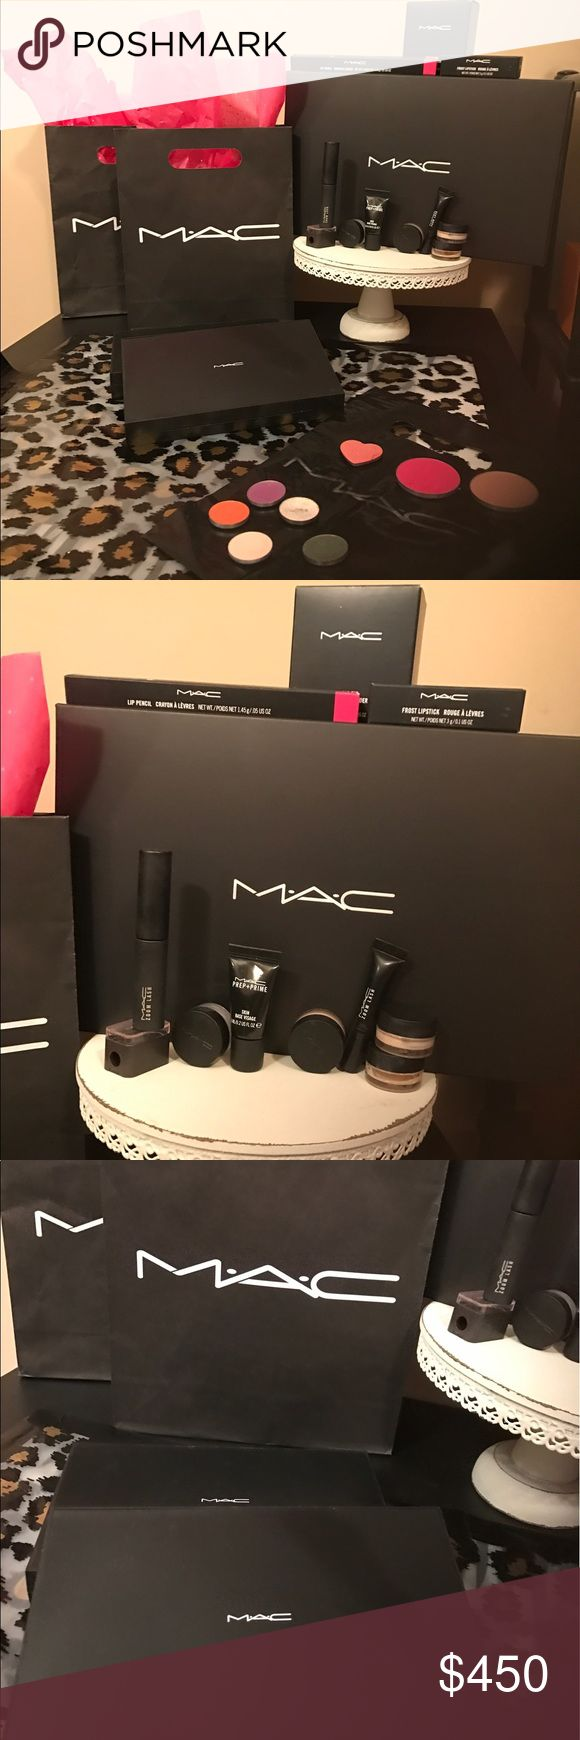 "MAC Cosmetics Bundle MAC Cosmetics Bundle includes: large Mac zoom lash mascara & a travel size (black),pencil sharpener, prep+prime, 1 large double-sided magnetic Mac palette. Several different shades of eyeshadow. More shades laid out for viewing along w/2 full size blushes (the heart is TooFaced blush) Mac full size lipstick  in ""Ruby Woo"" super popular Mac shade! 2 full size pigment shadows. +FREE Mac sample gift  w/purchase!! I will make separate listings upon request! MAC Cosmetics…"